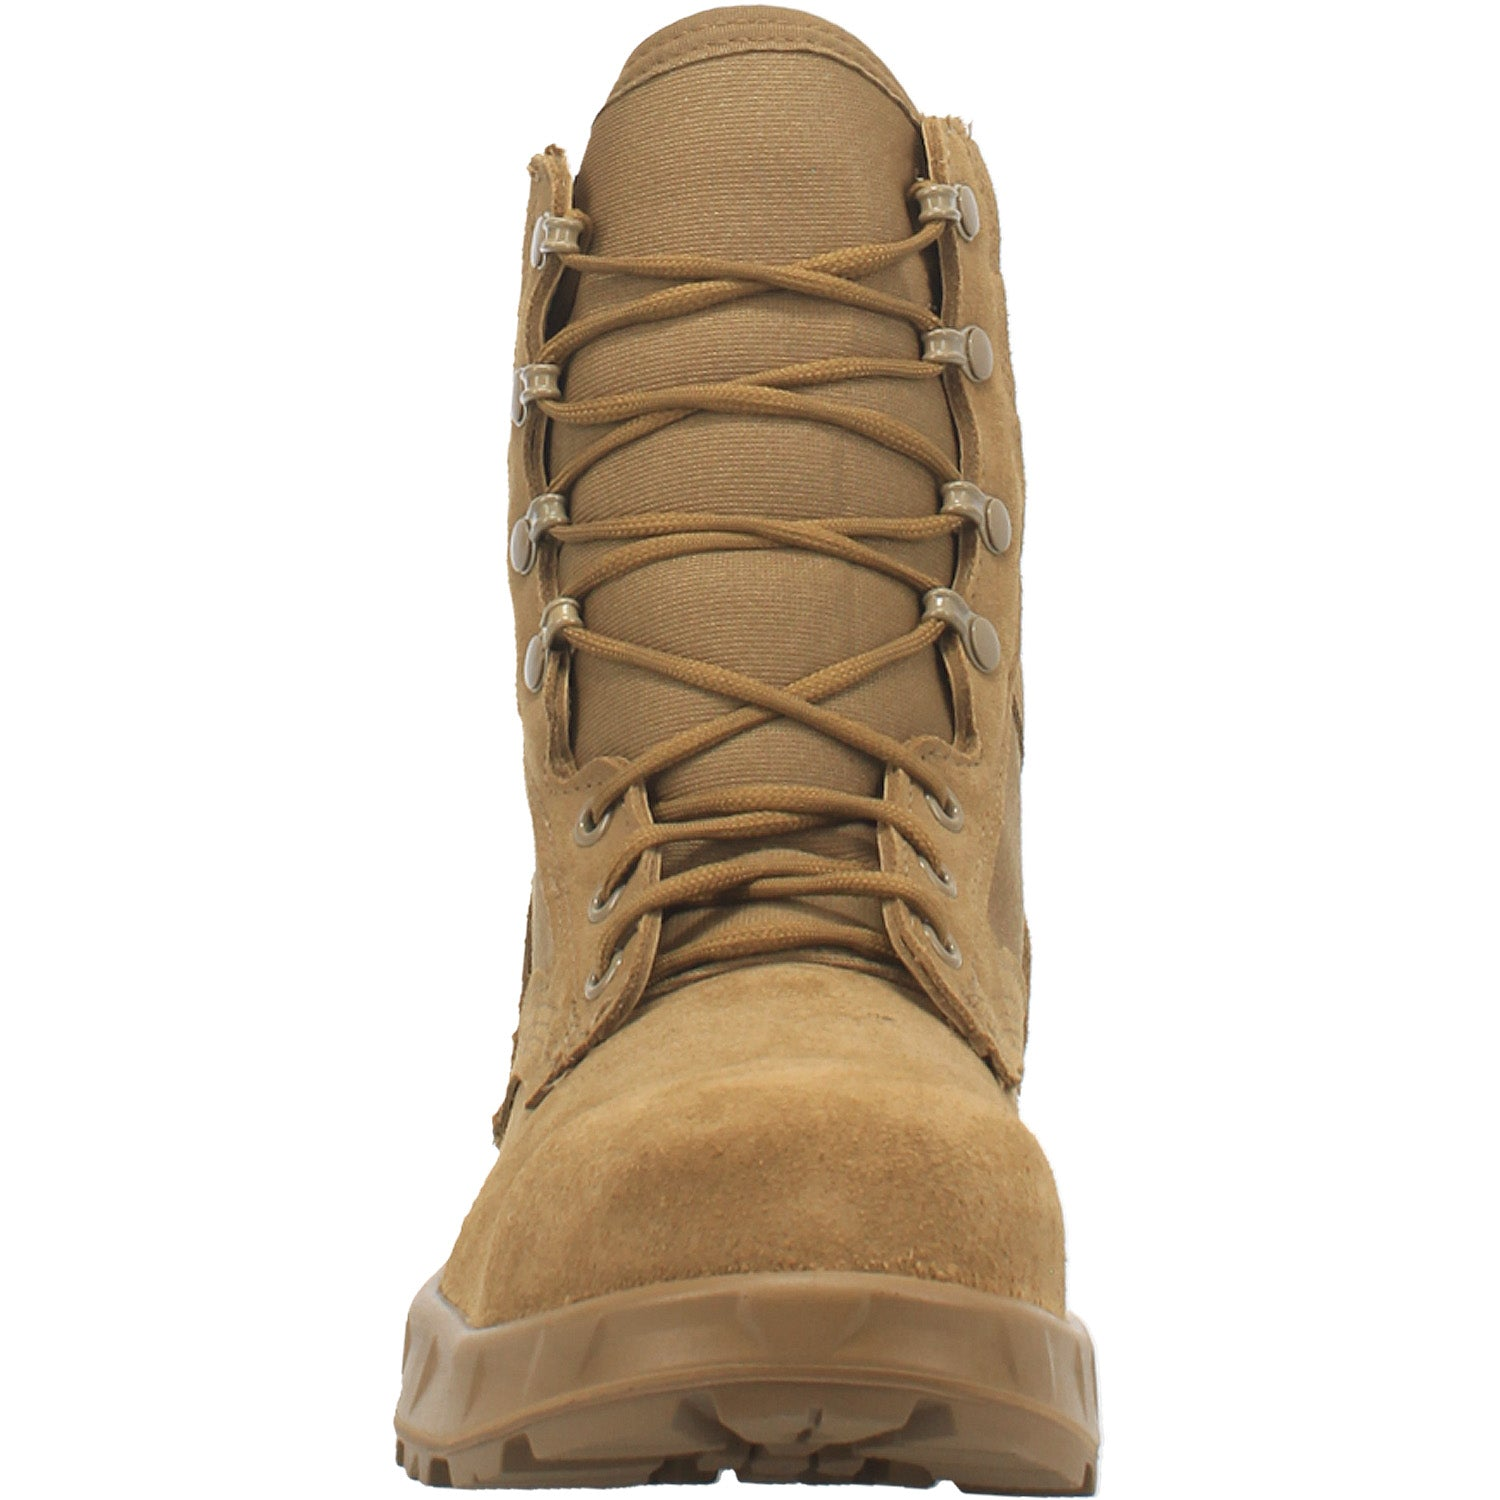 T2 Ultra Light Hot Weather Steel Toe Combat Boot 14940839739434